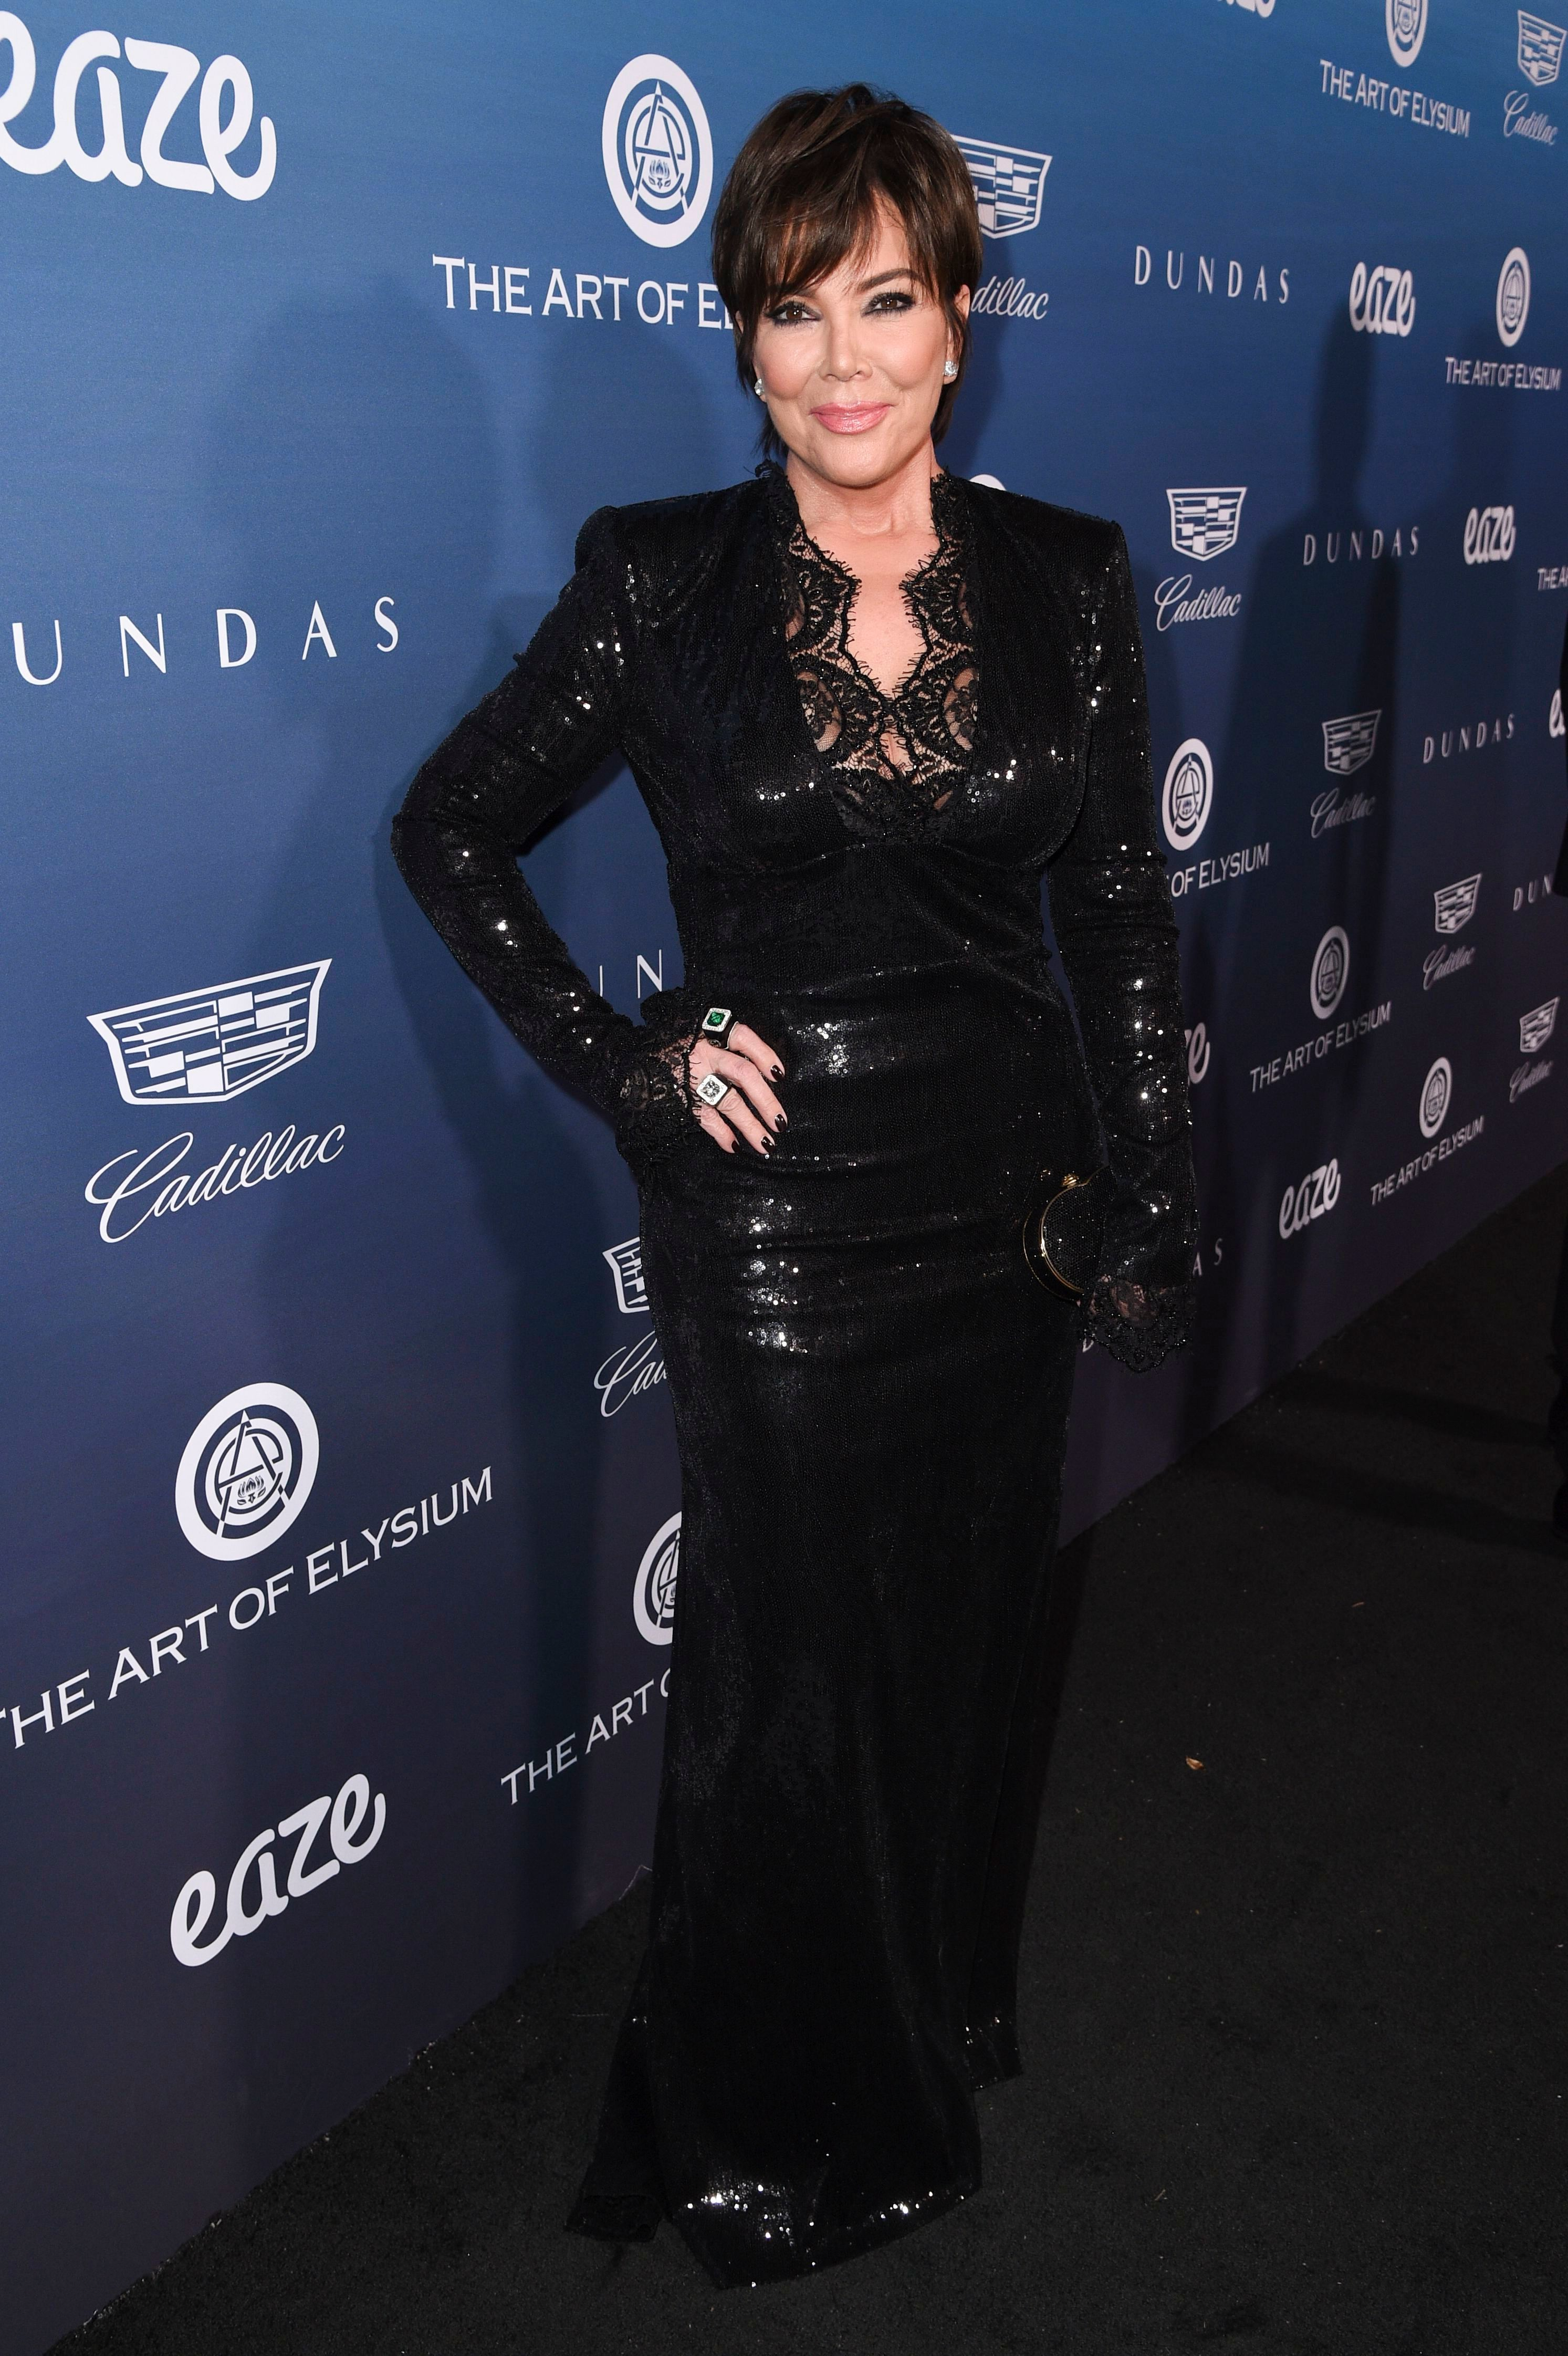 Kris Jenner attends The Art of Elysium's 12th Annual Heaven Gala in Los Angeles on Jan. 5, 2019.